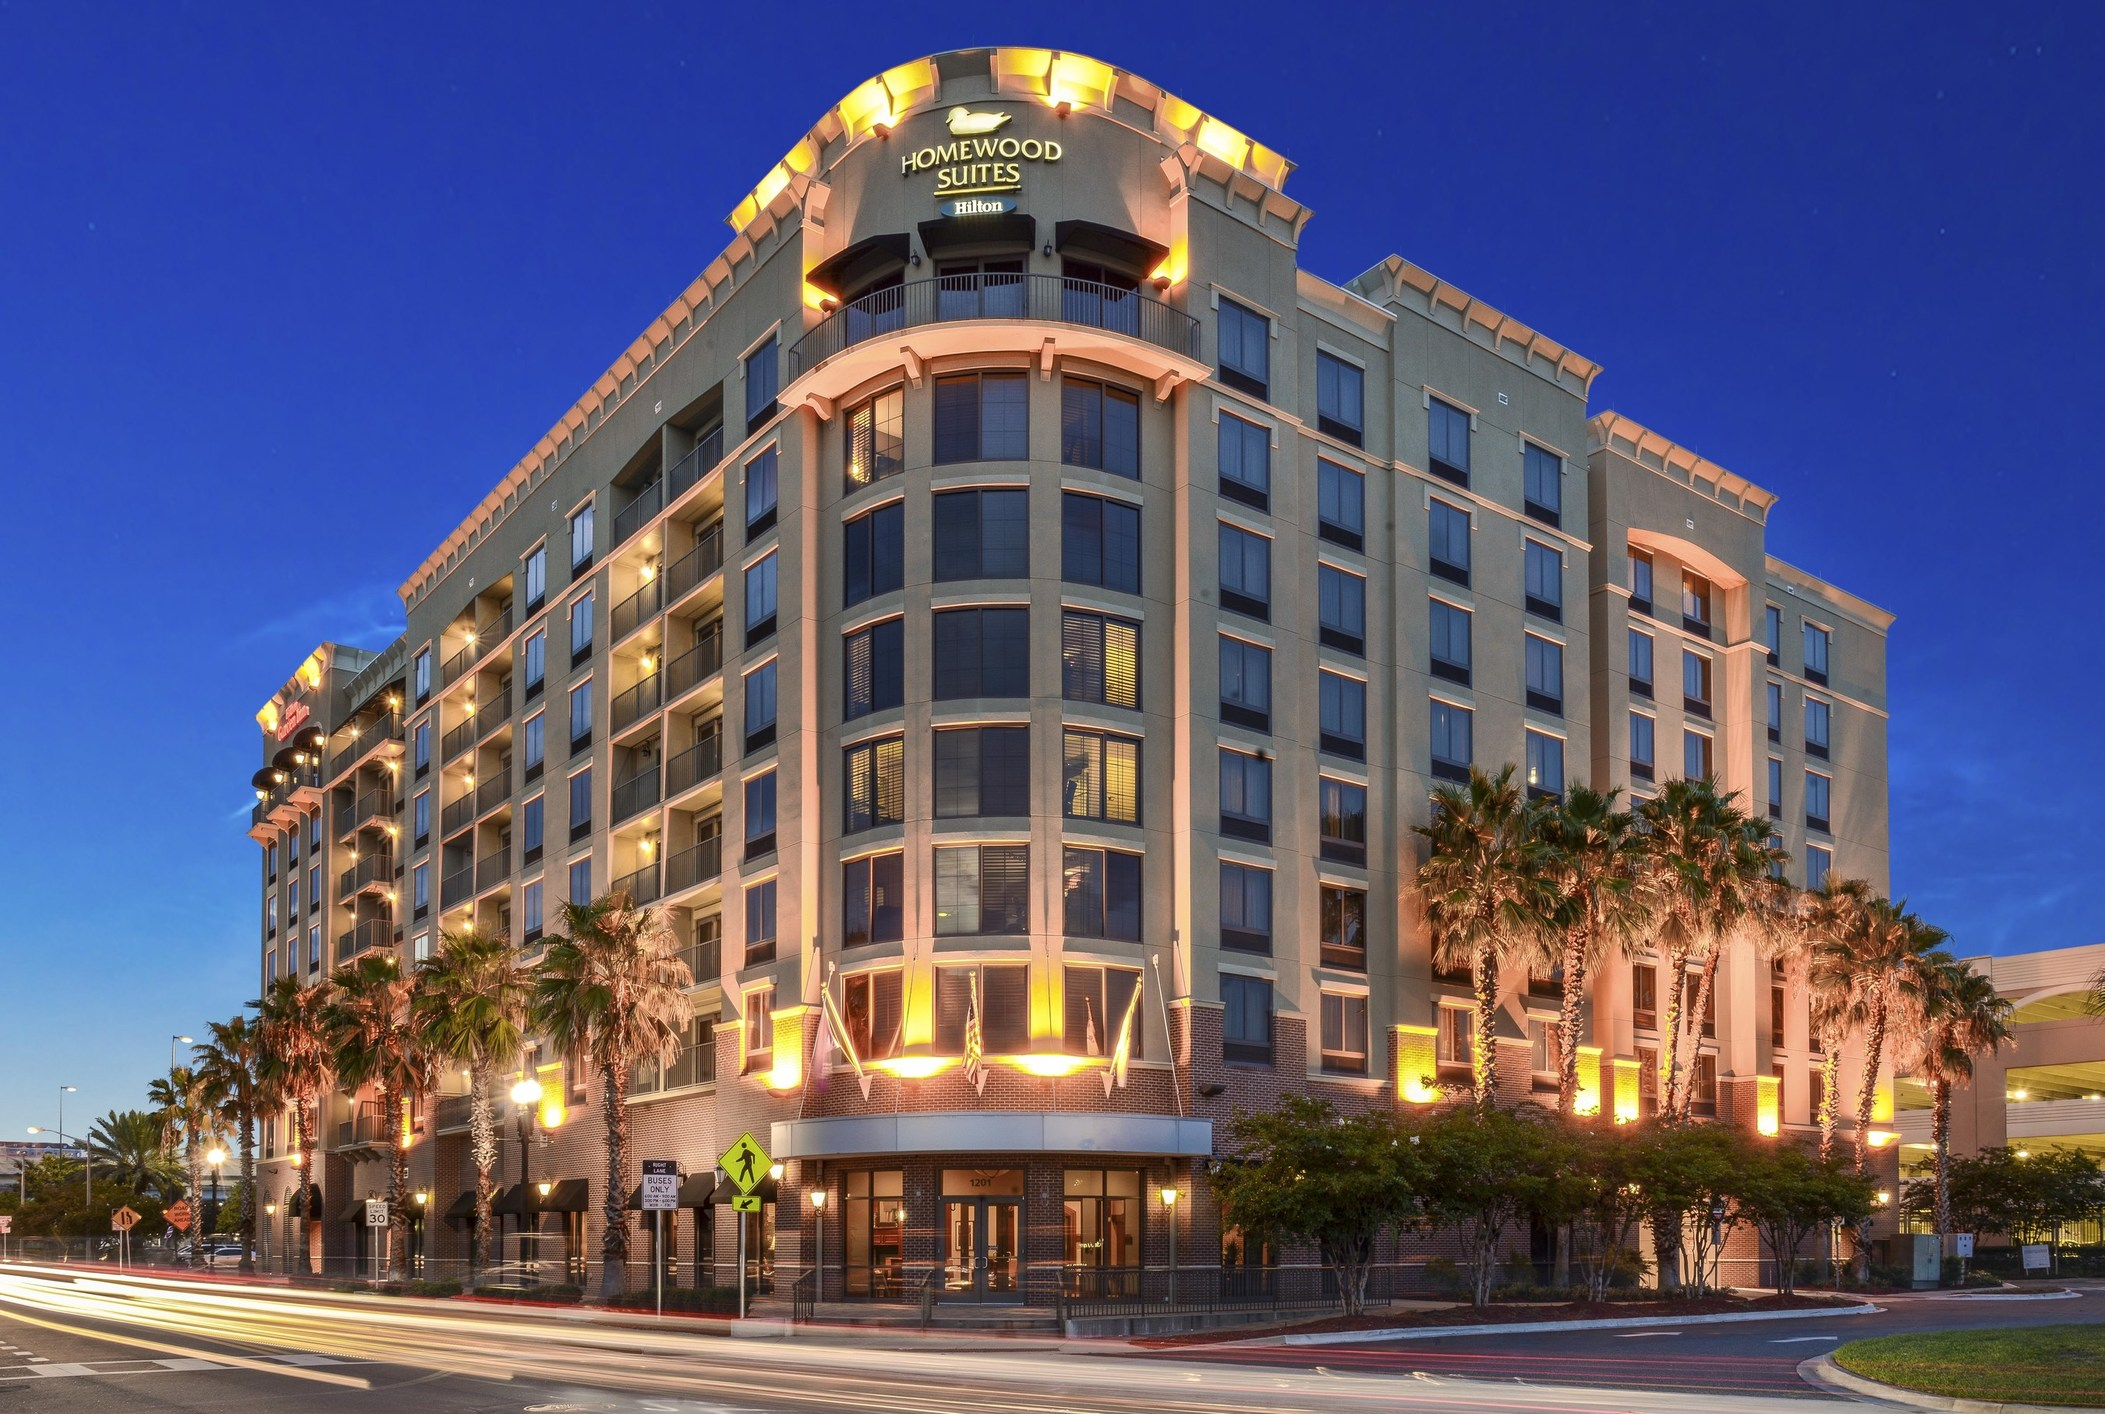 Lingerfelt Commonwealth Acquires Hilton Dual Branded Hotel In Downtown Jacksonville Florida